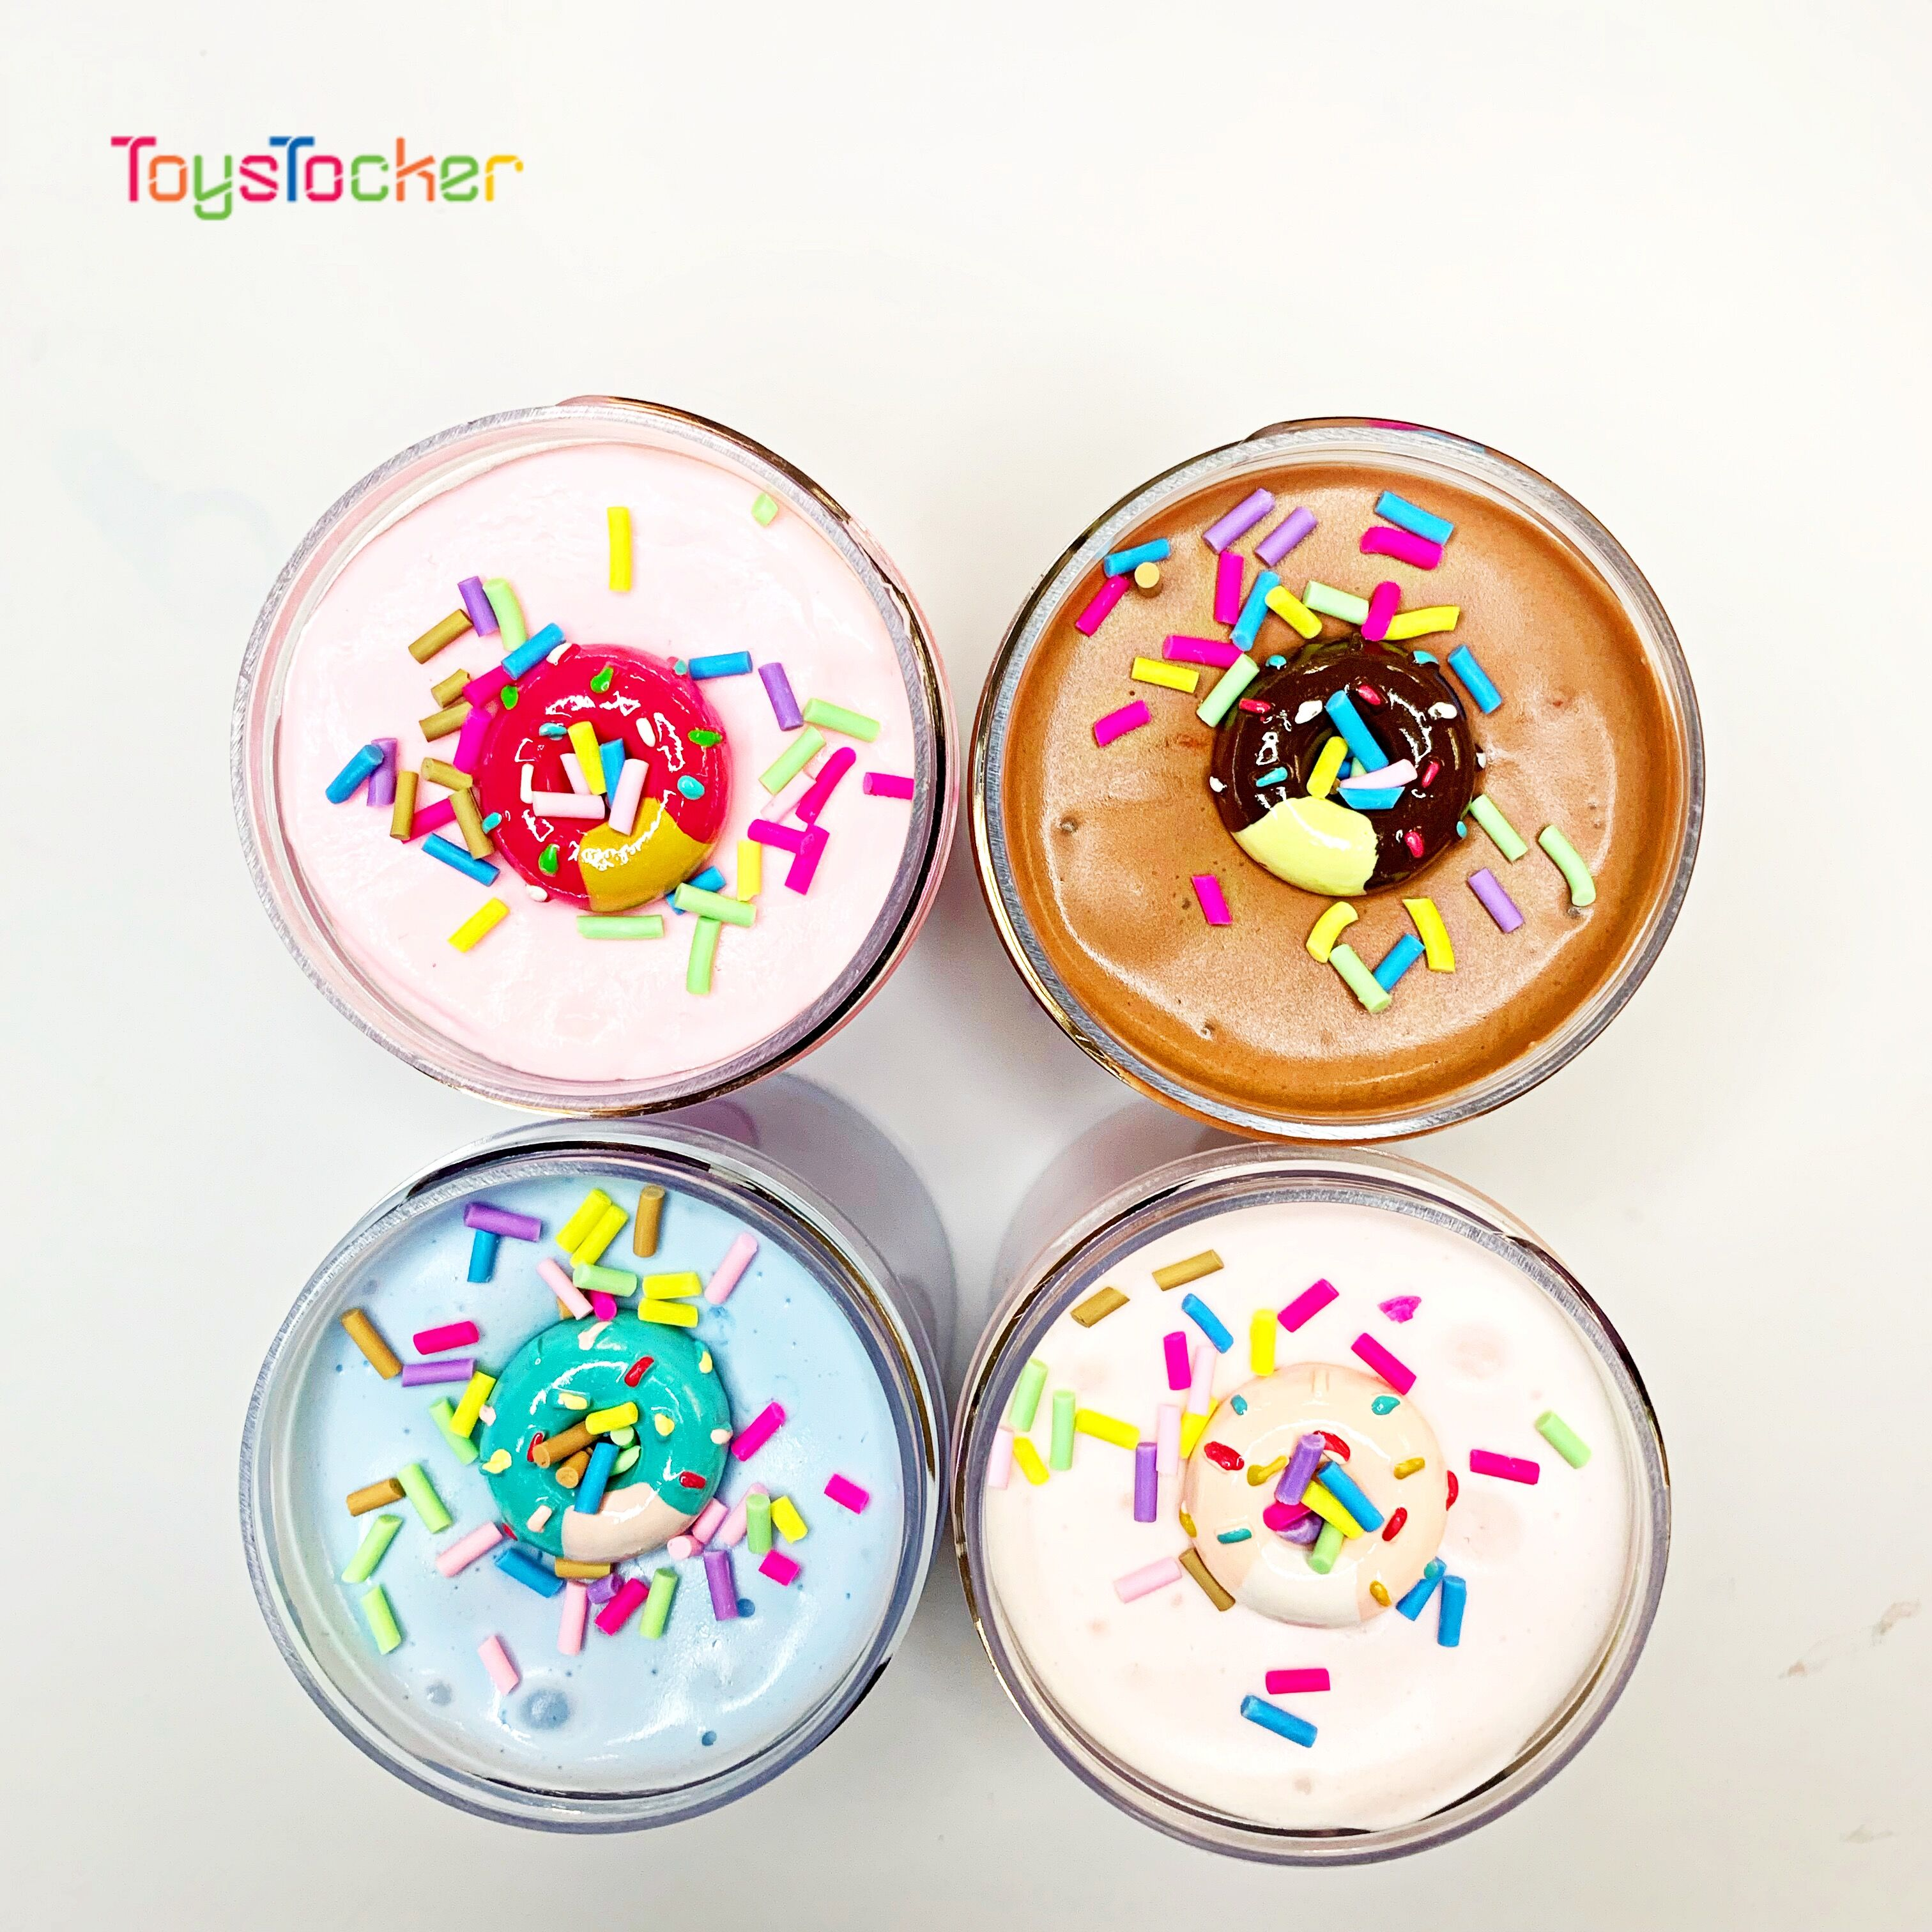 High-Quality Non-Toxic Butter Slime Clay Resin Donut Charm Slime, Stress Relief Toy For Children Gift